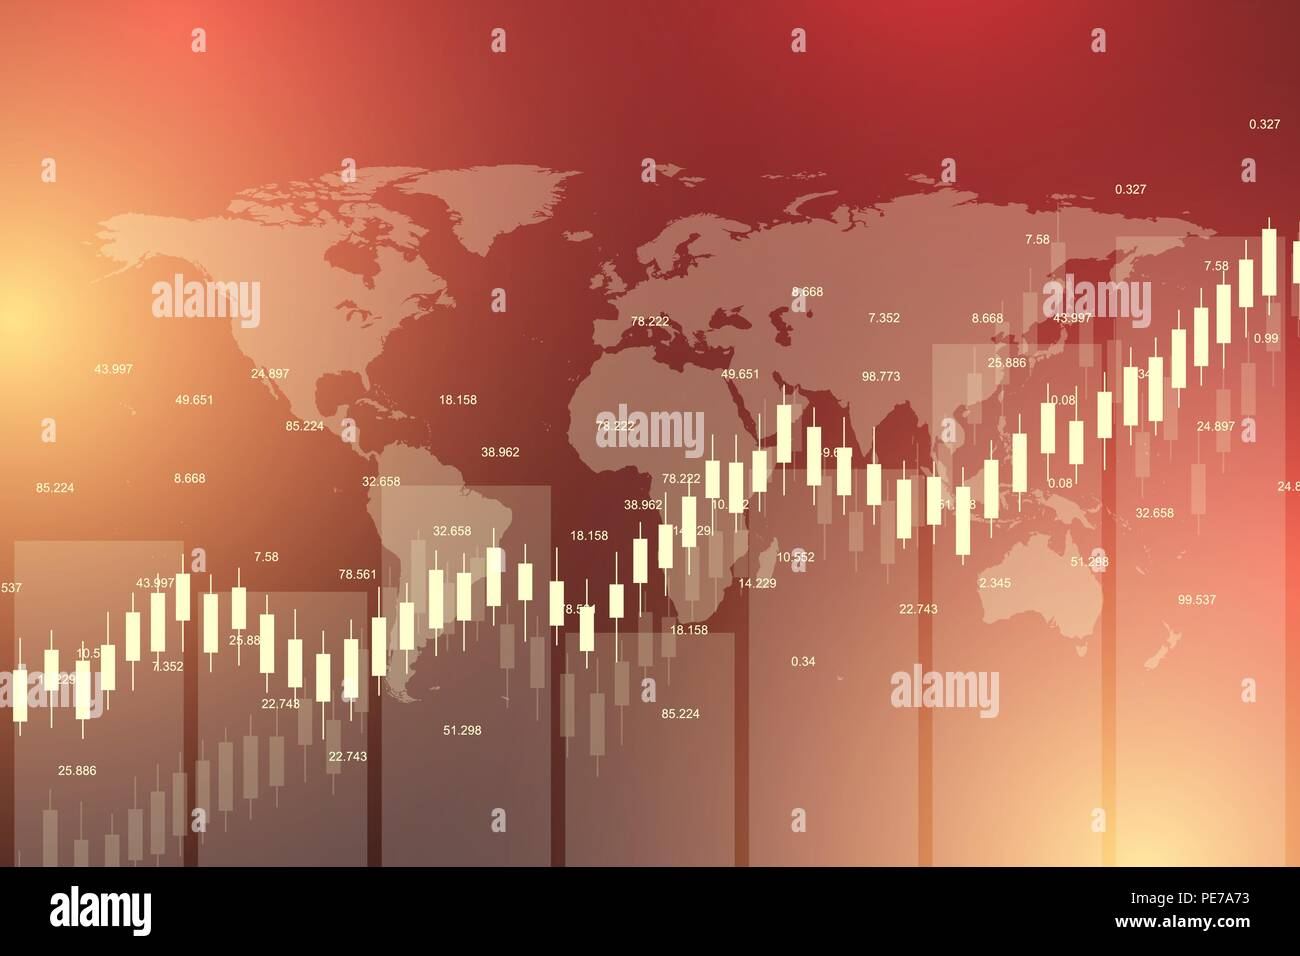 Forex trading investment